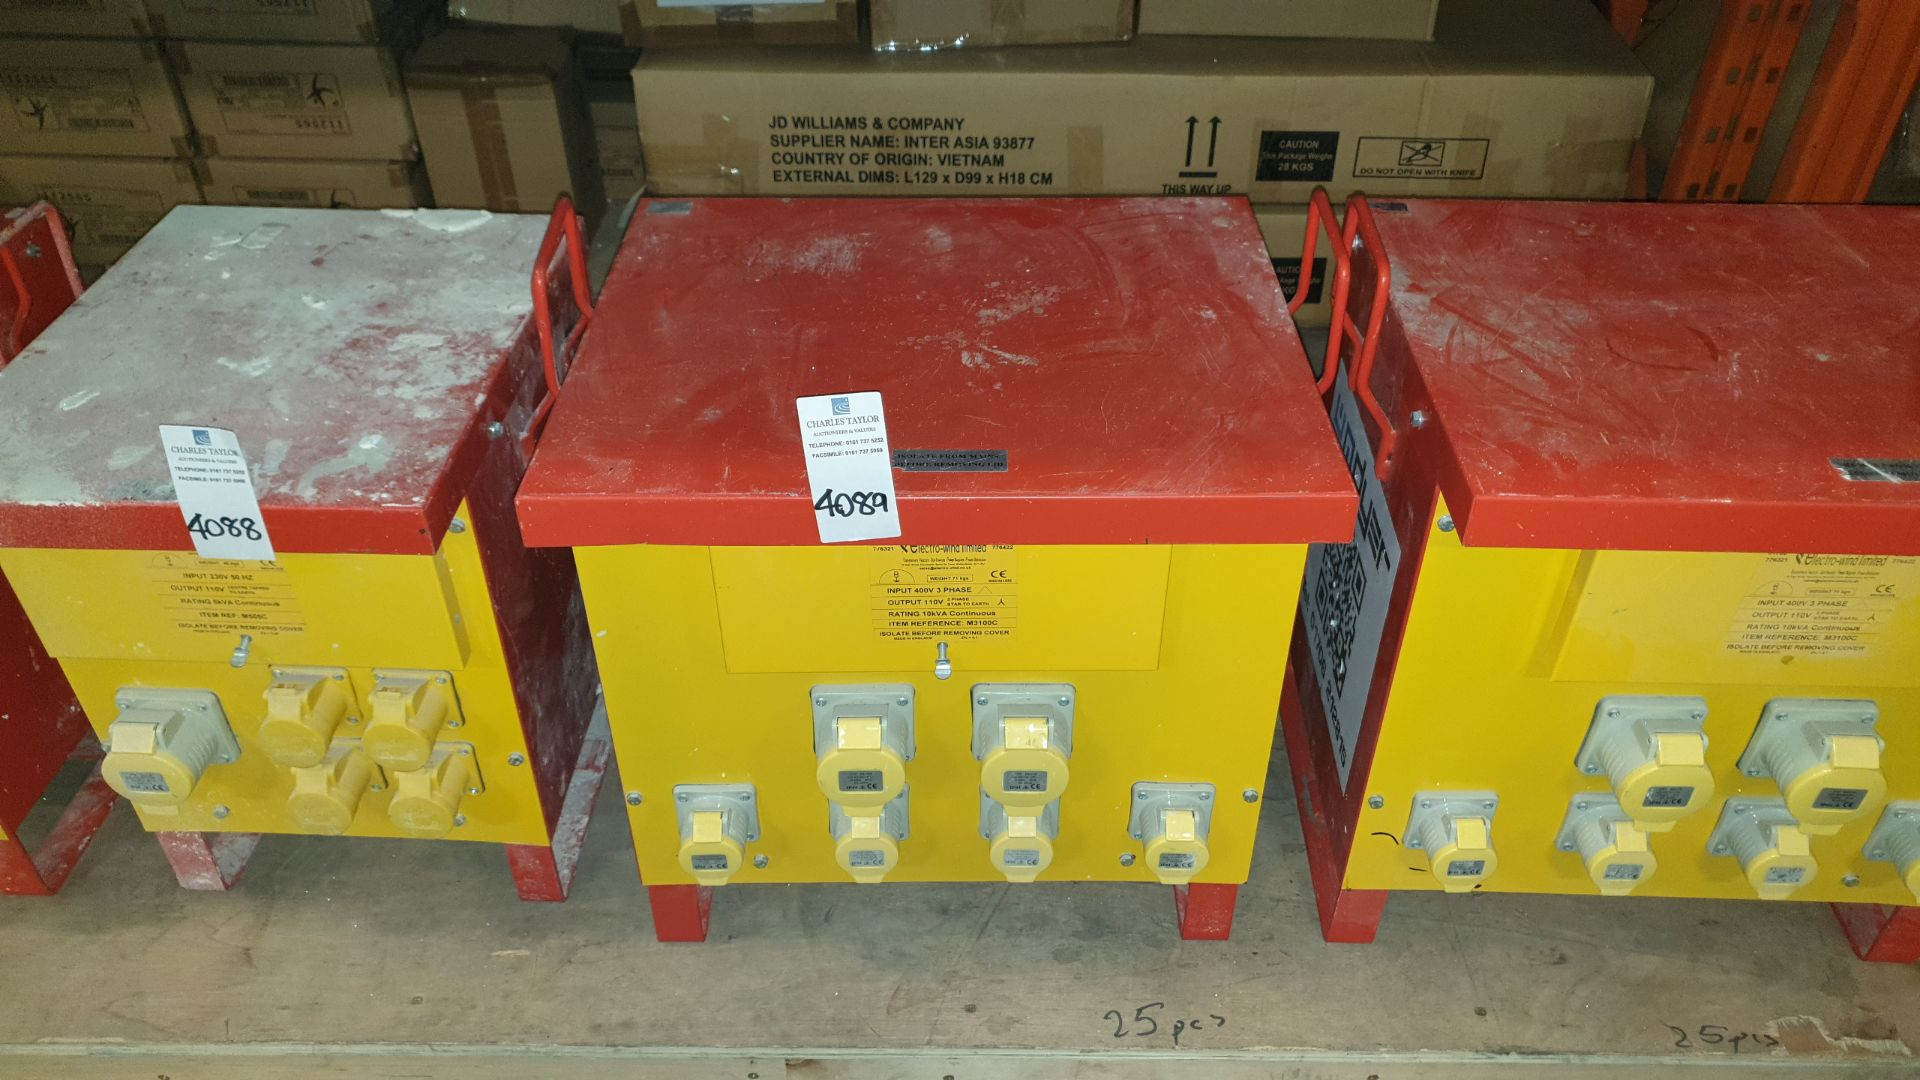 INDUSTRAIL TRANSFORMER INPUT 400 V 3 PHASE OUTPUT 110 V